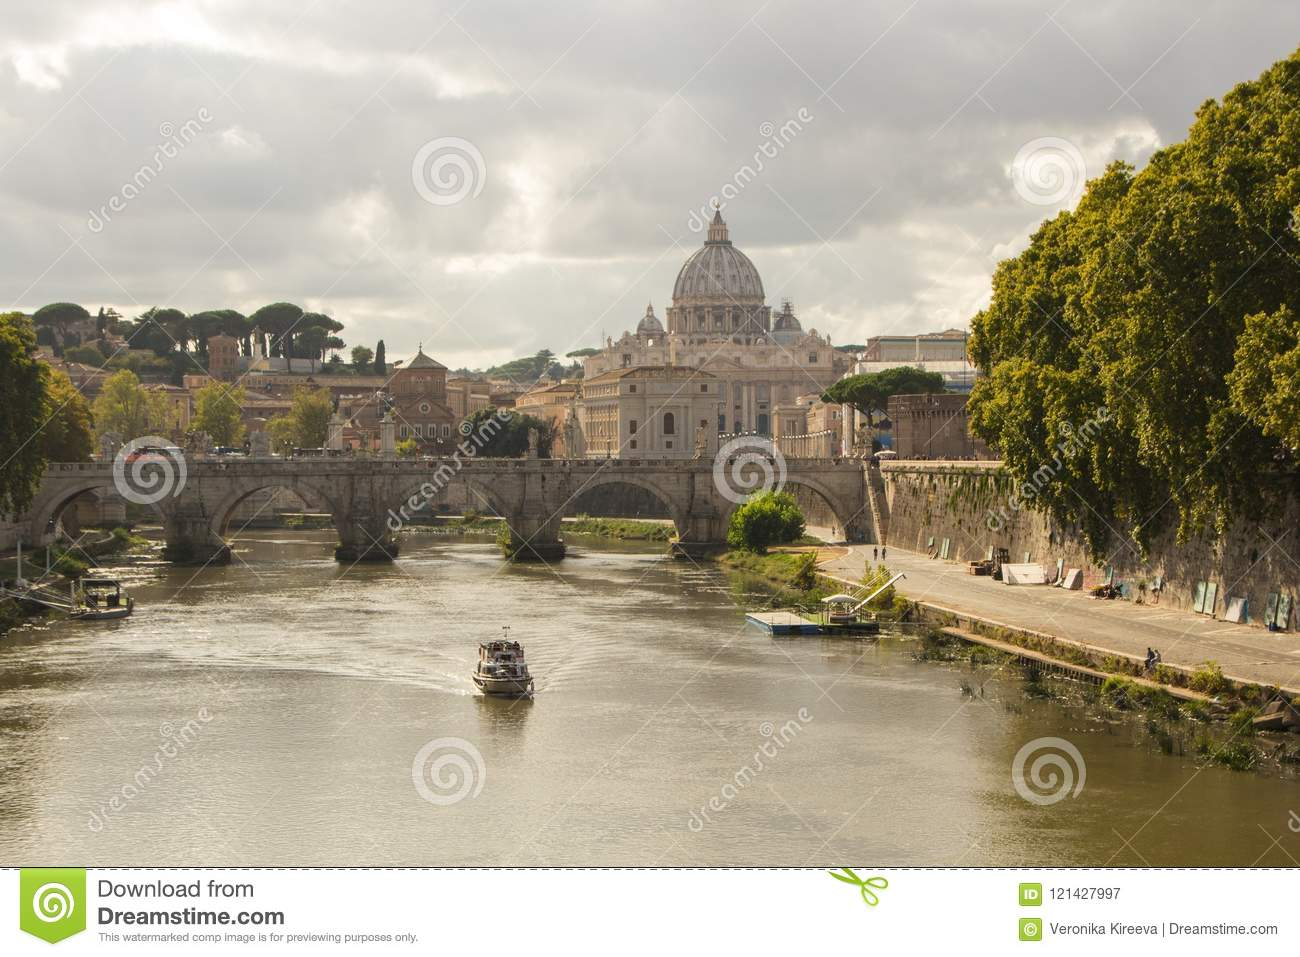 Rome, Italy - September 14, 2017: Beautiful view of St. Peter`s Basilica in the Vatican from the Tiber River in Rome.